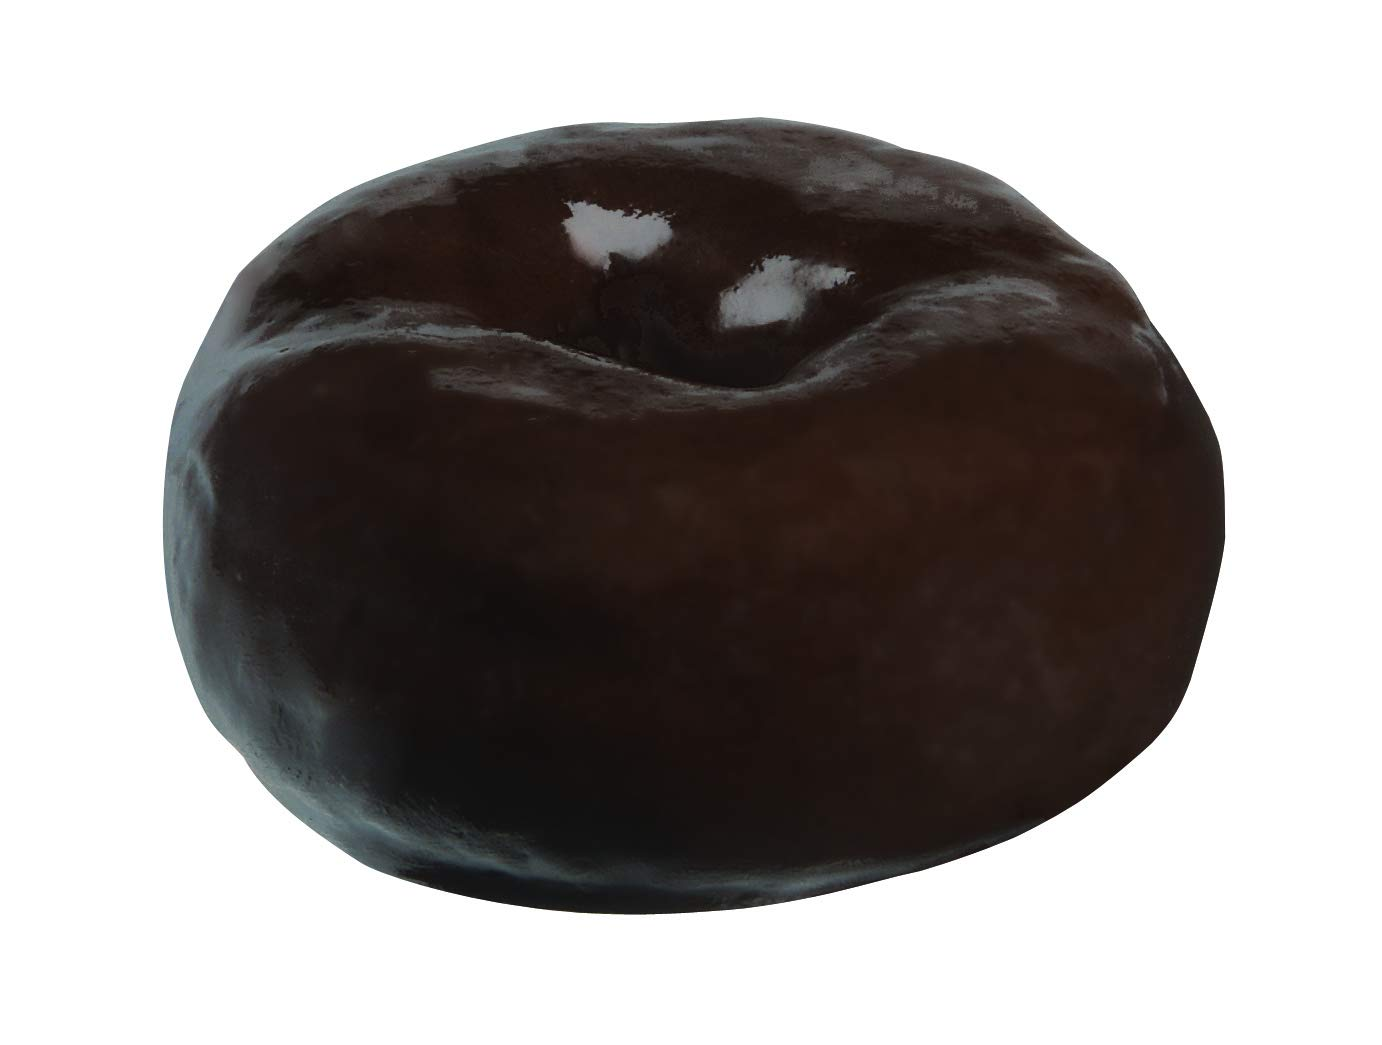 Hostess Donettes Mini Donuts, Double Chocolate, 3 Ounce, 10 Count by Hostess (Image #8)